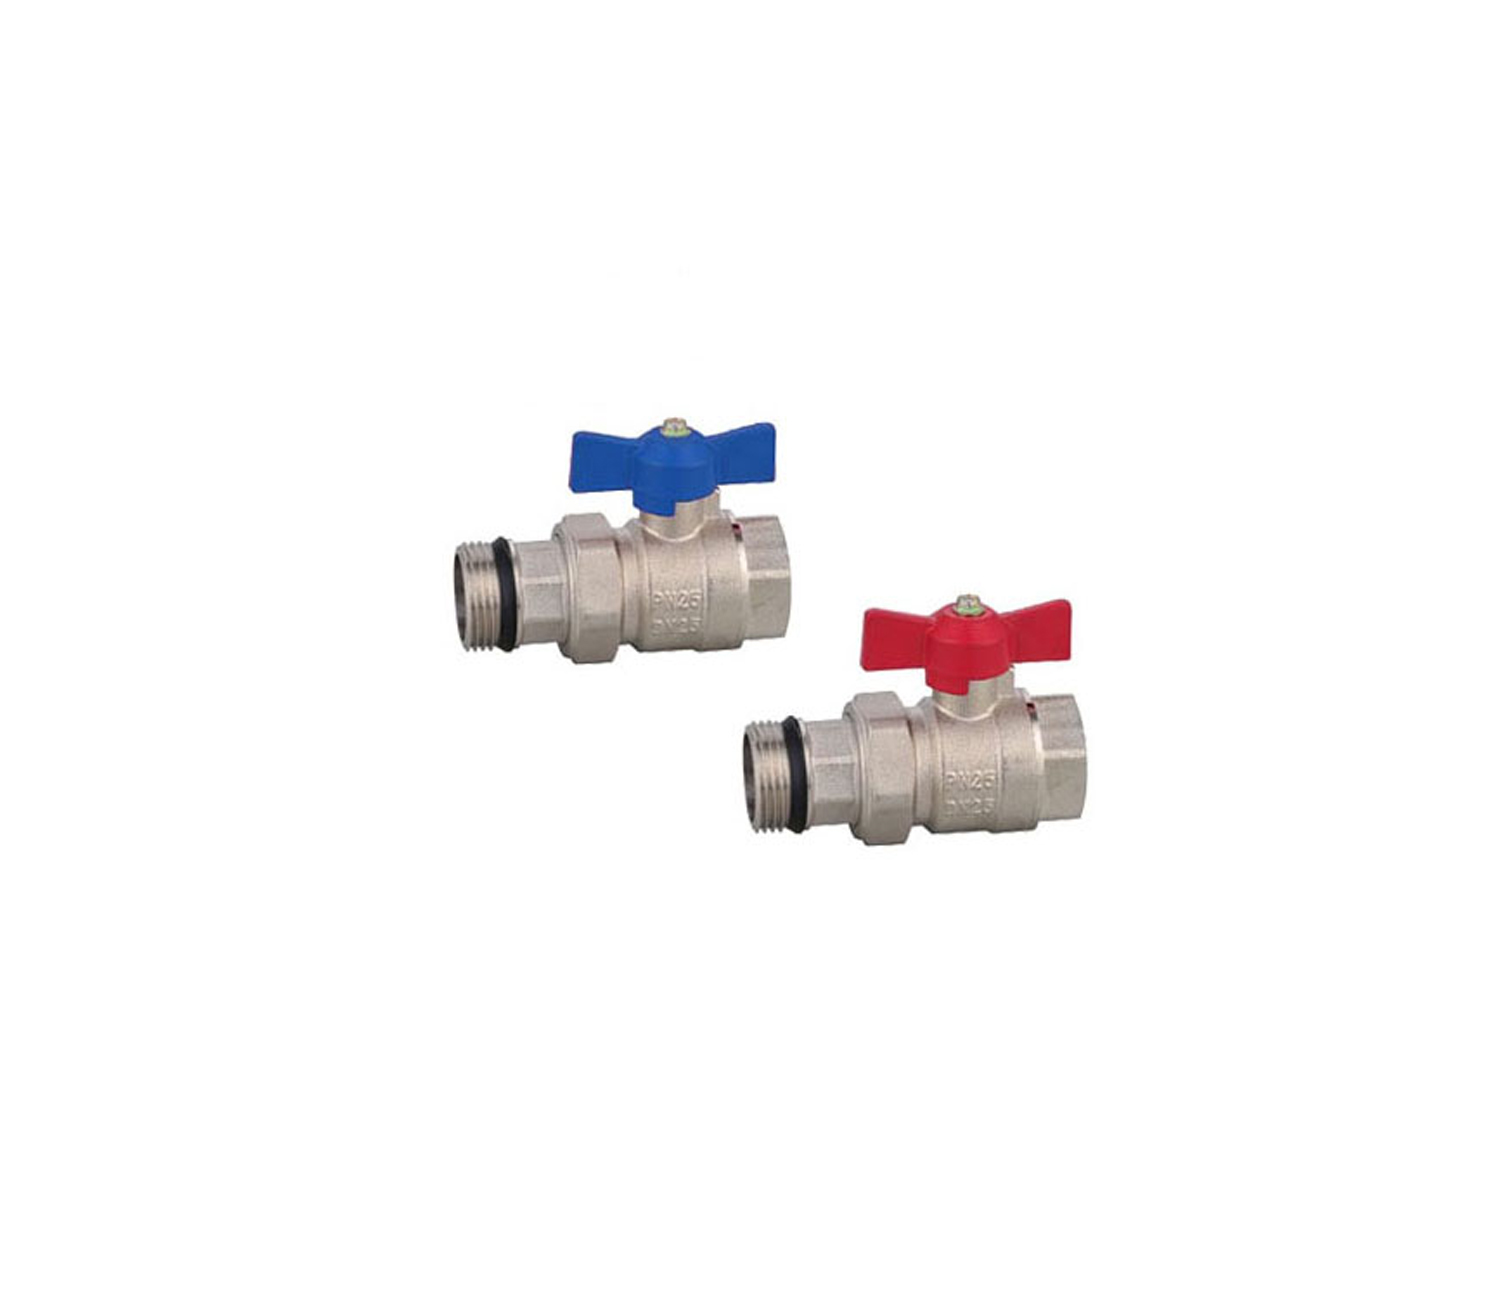 1 Inch Ball Valve set for Manifold Blue and Red Handle